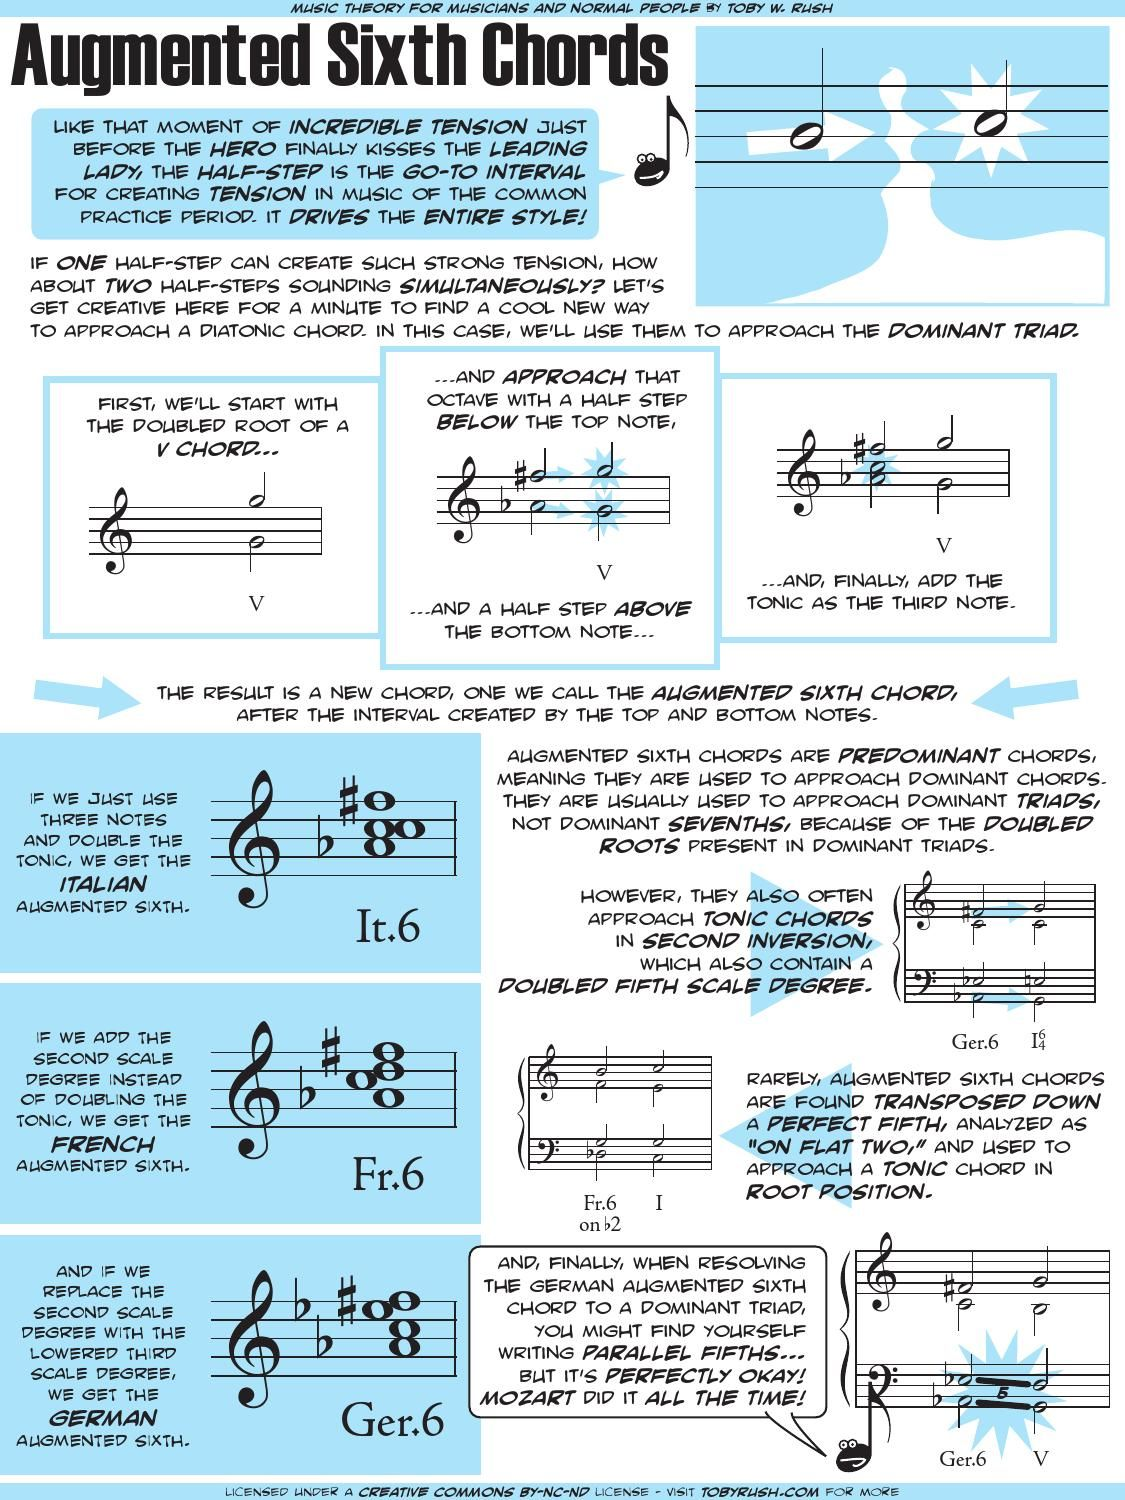 Augmented Sixth Chords (With images) | Music theory, Music composition, Music teaching resources